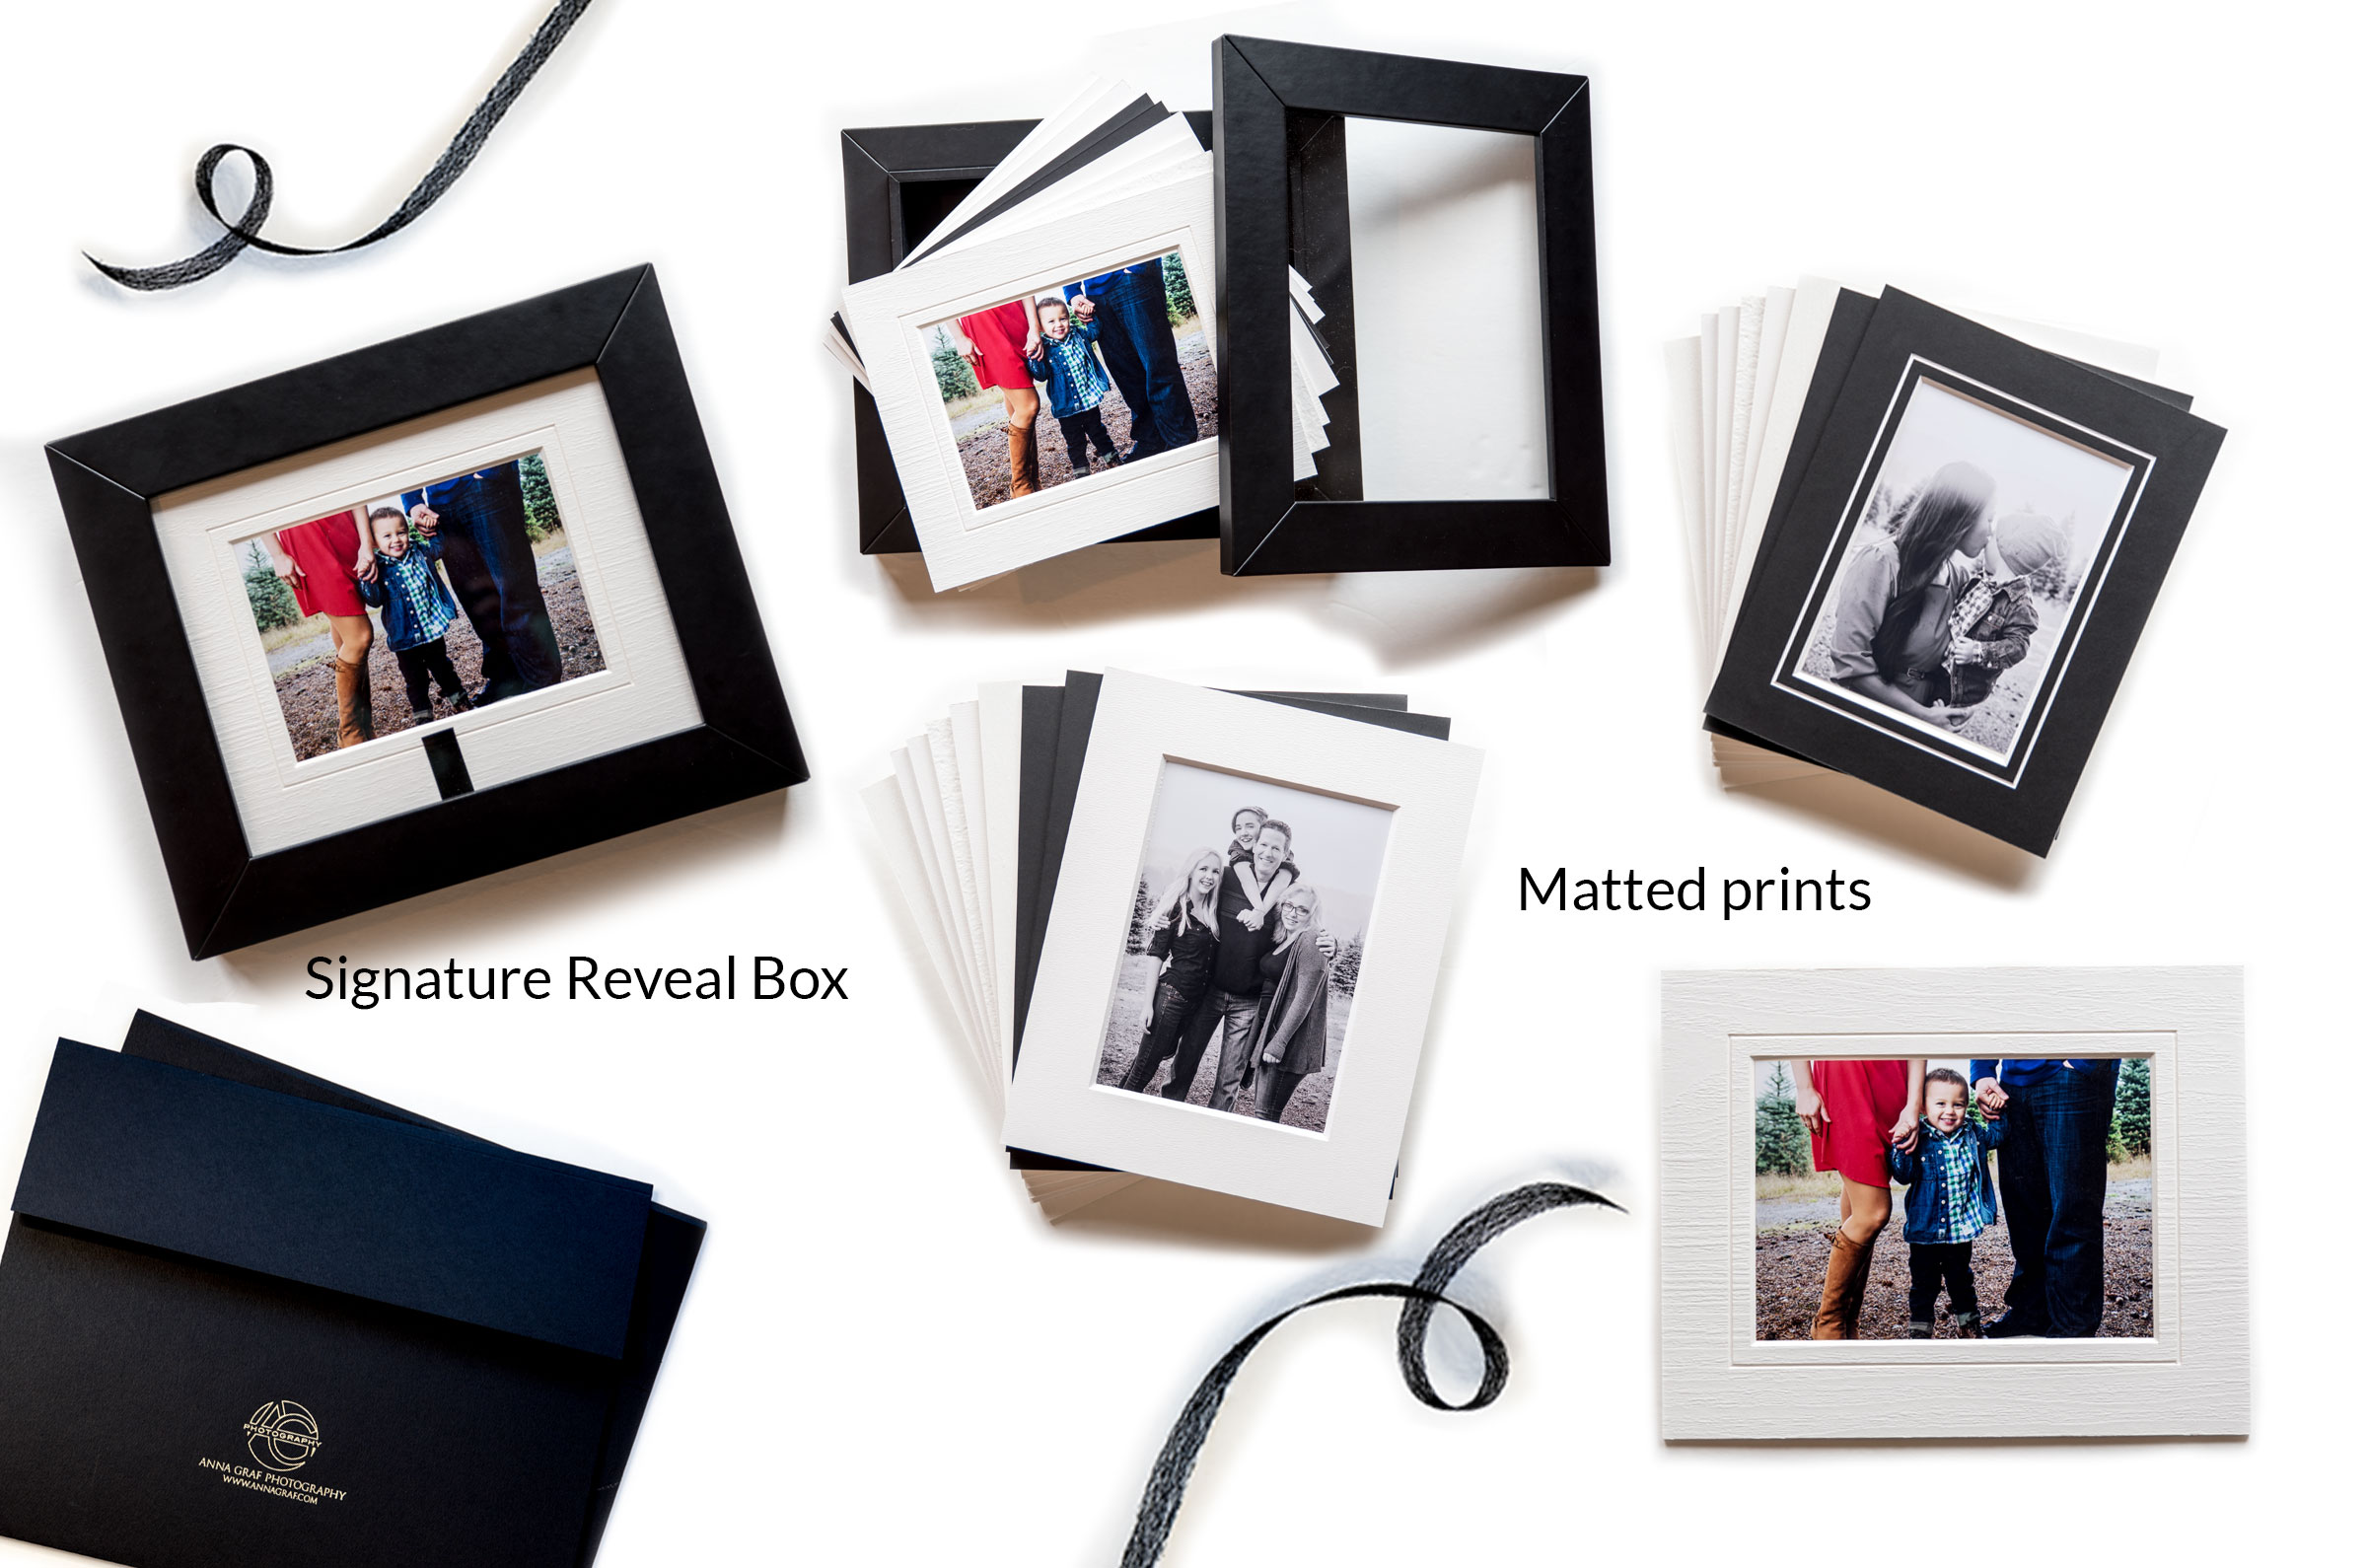 Matted Professional Prints from Anna Graf Photography